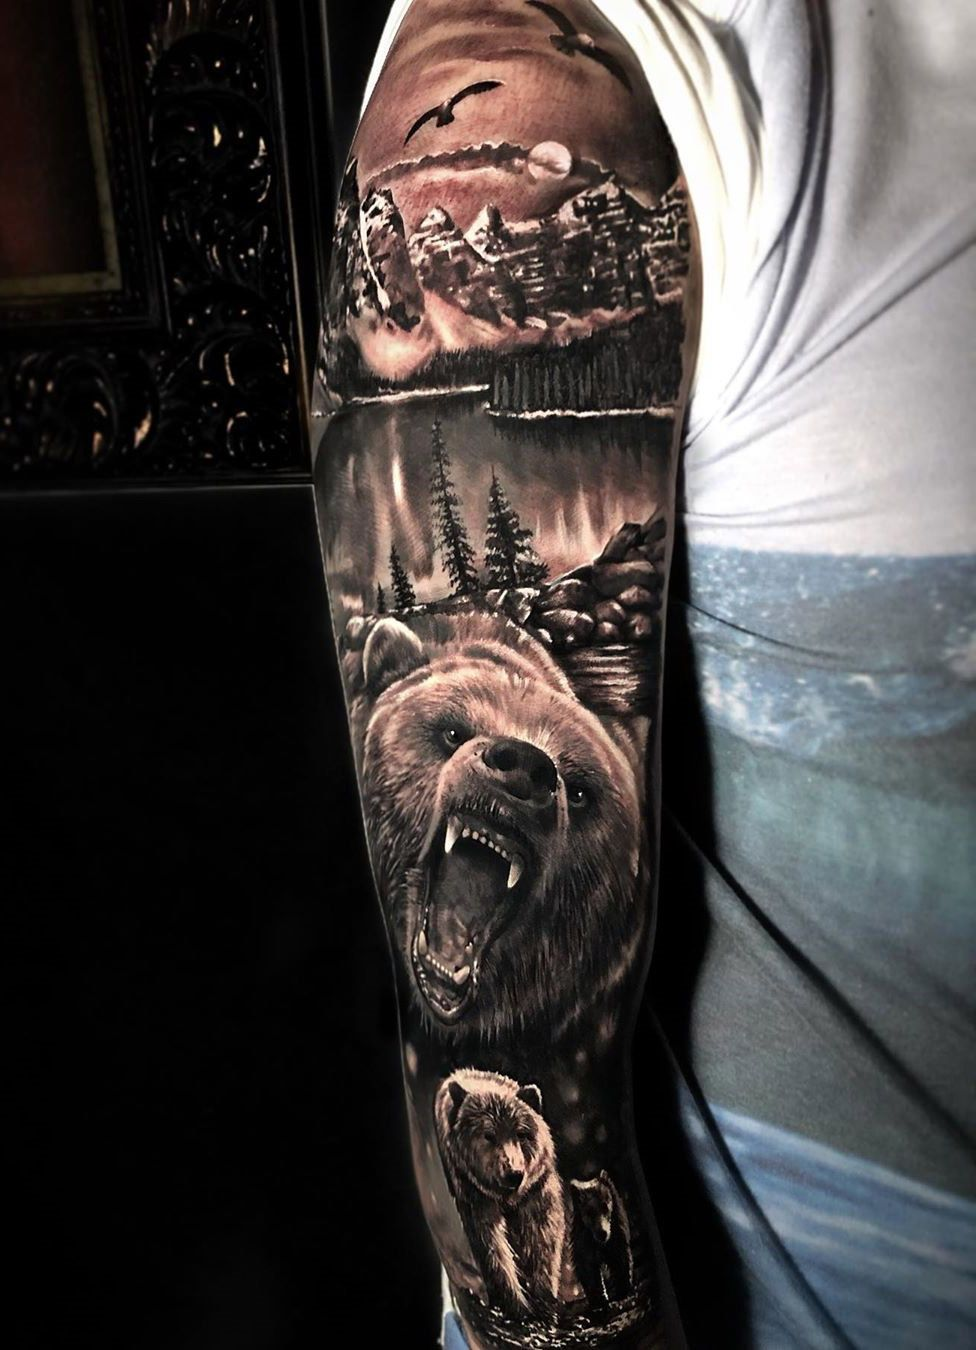 Bear Nature Sleeve Best Tattoo Design Ideas Animal Sleeve Tattoo Bear Tattoos Bear Tattoo Designs